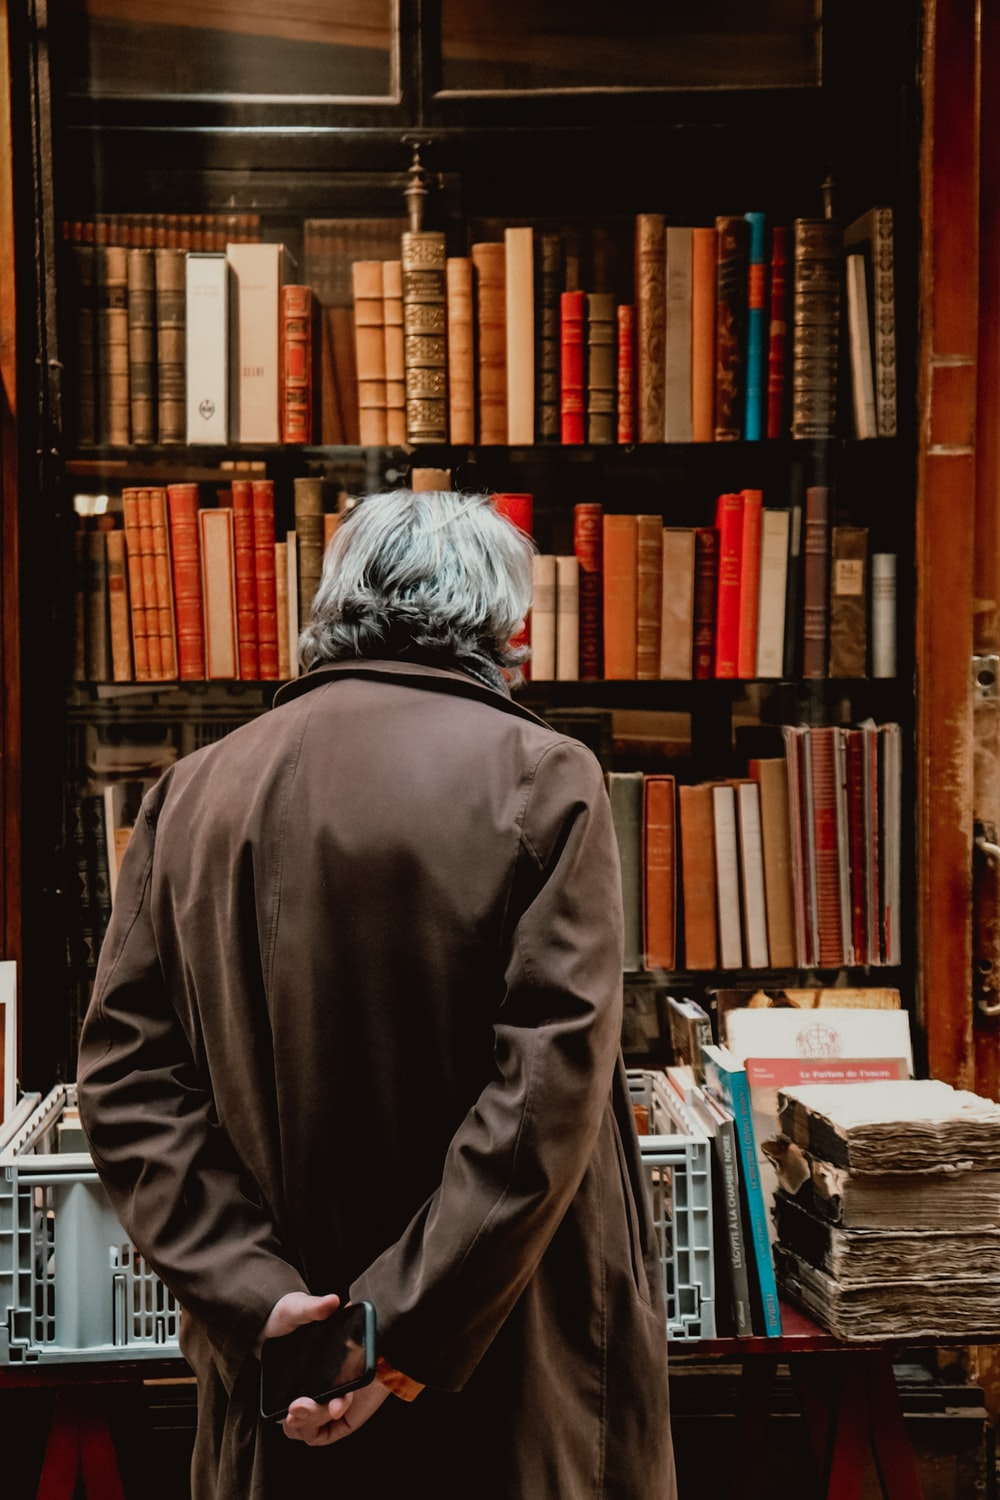 person in gray hoodie standing near books